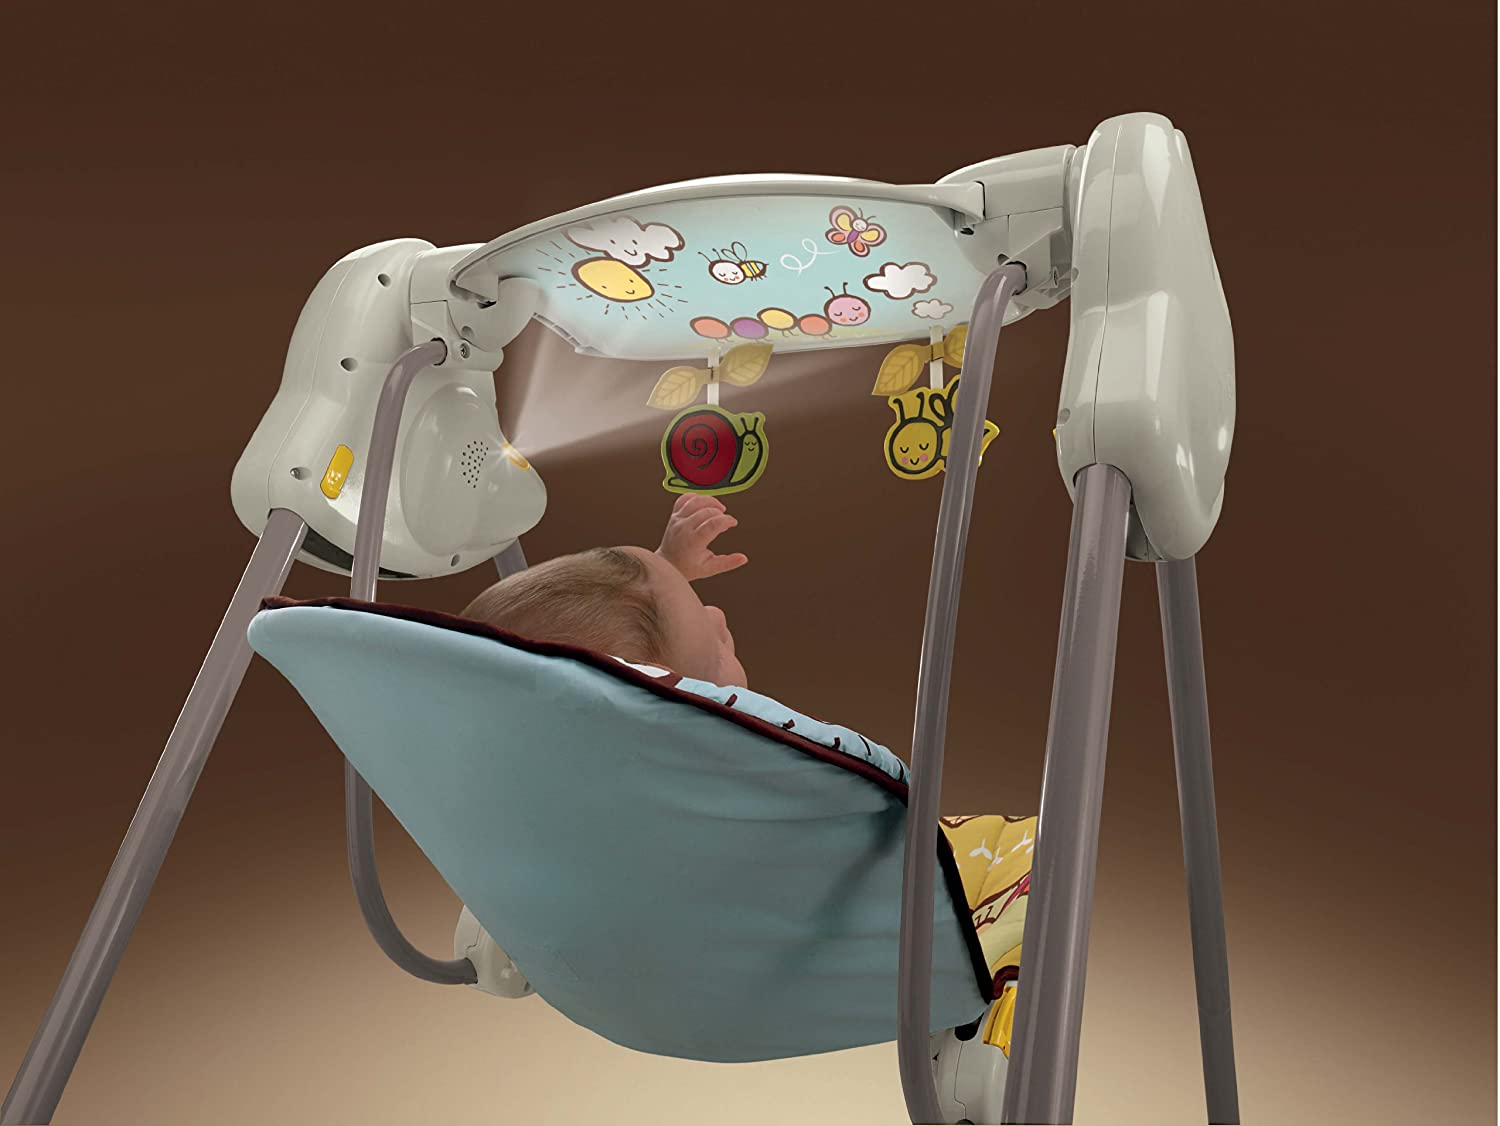 Amazon.com : Fisher-Price Musical Projection Swing (Discontinued by ...